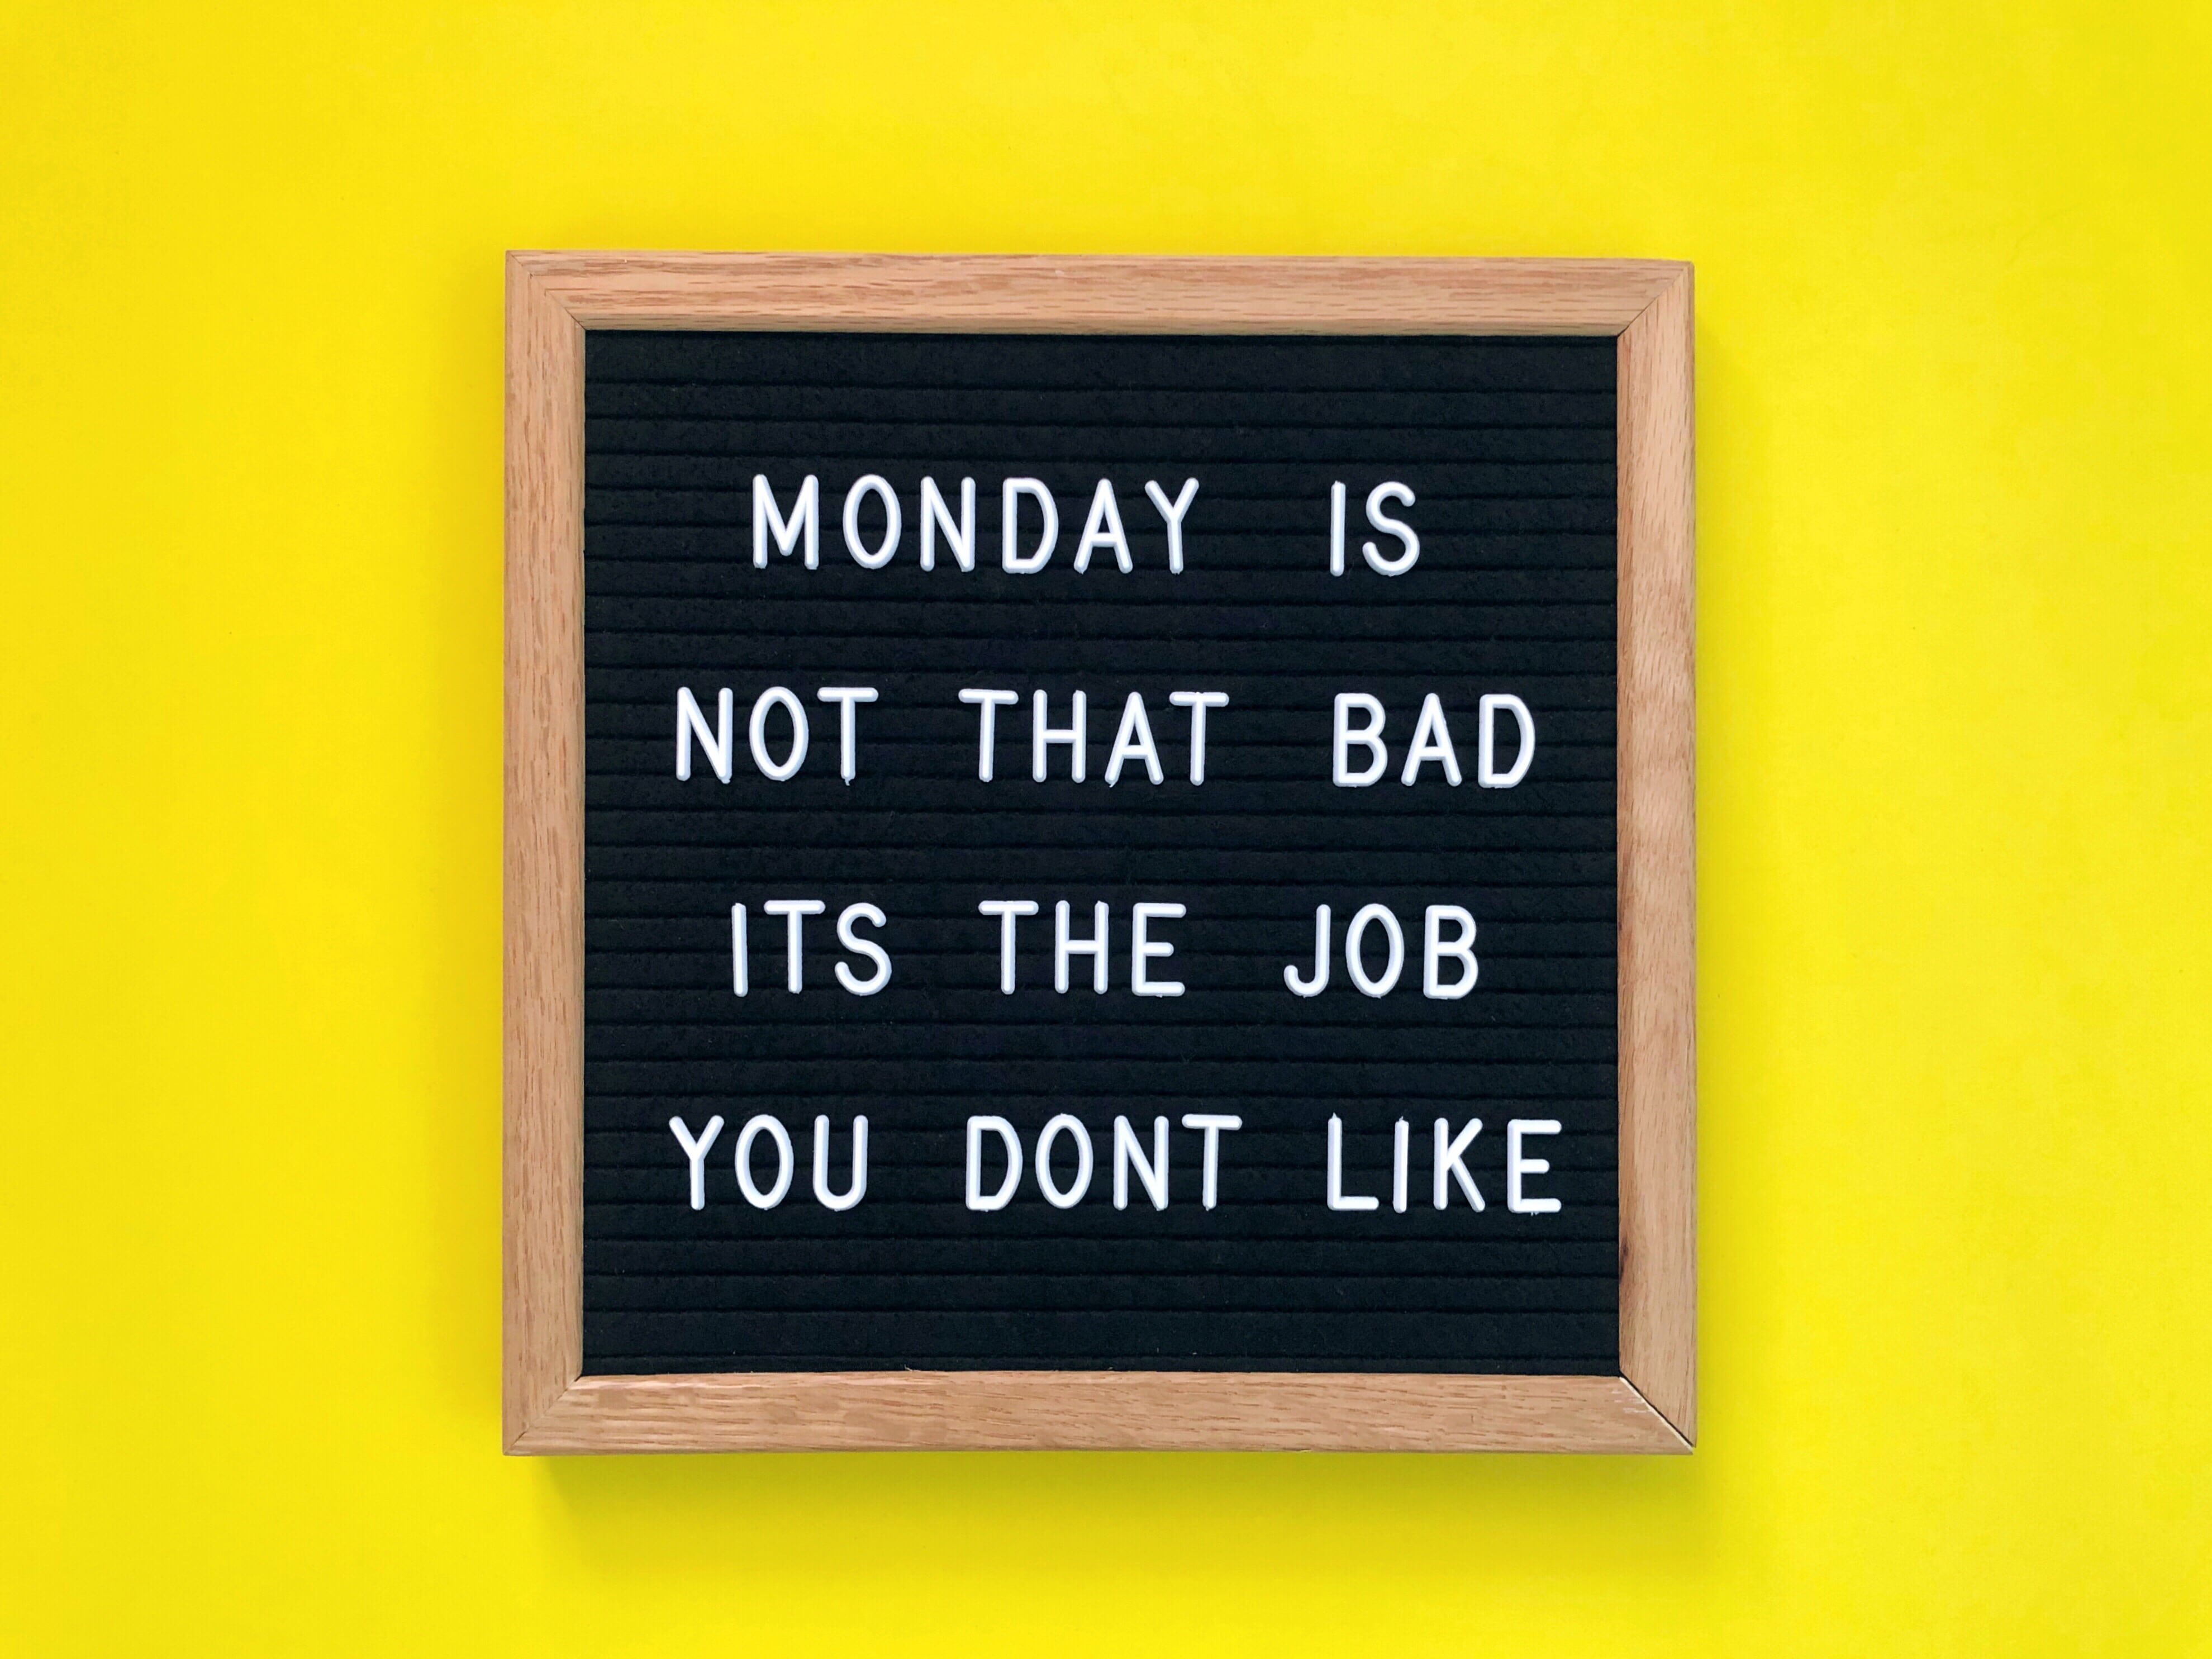 signs-you-dont-like-your-job-monday-is-not-that-bad-alignthoughts